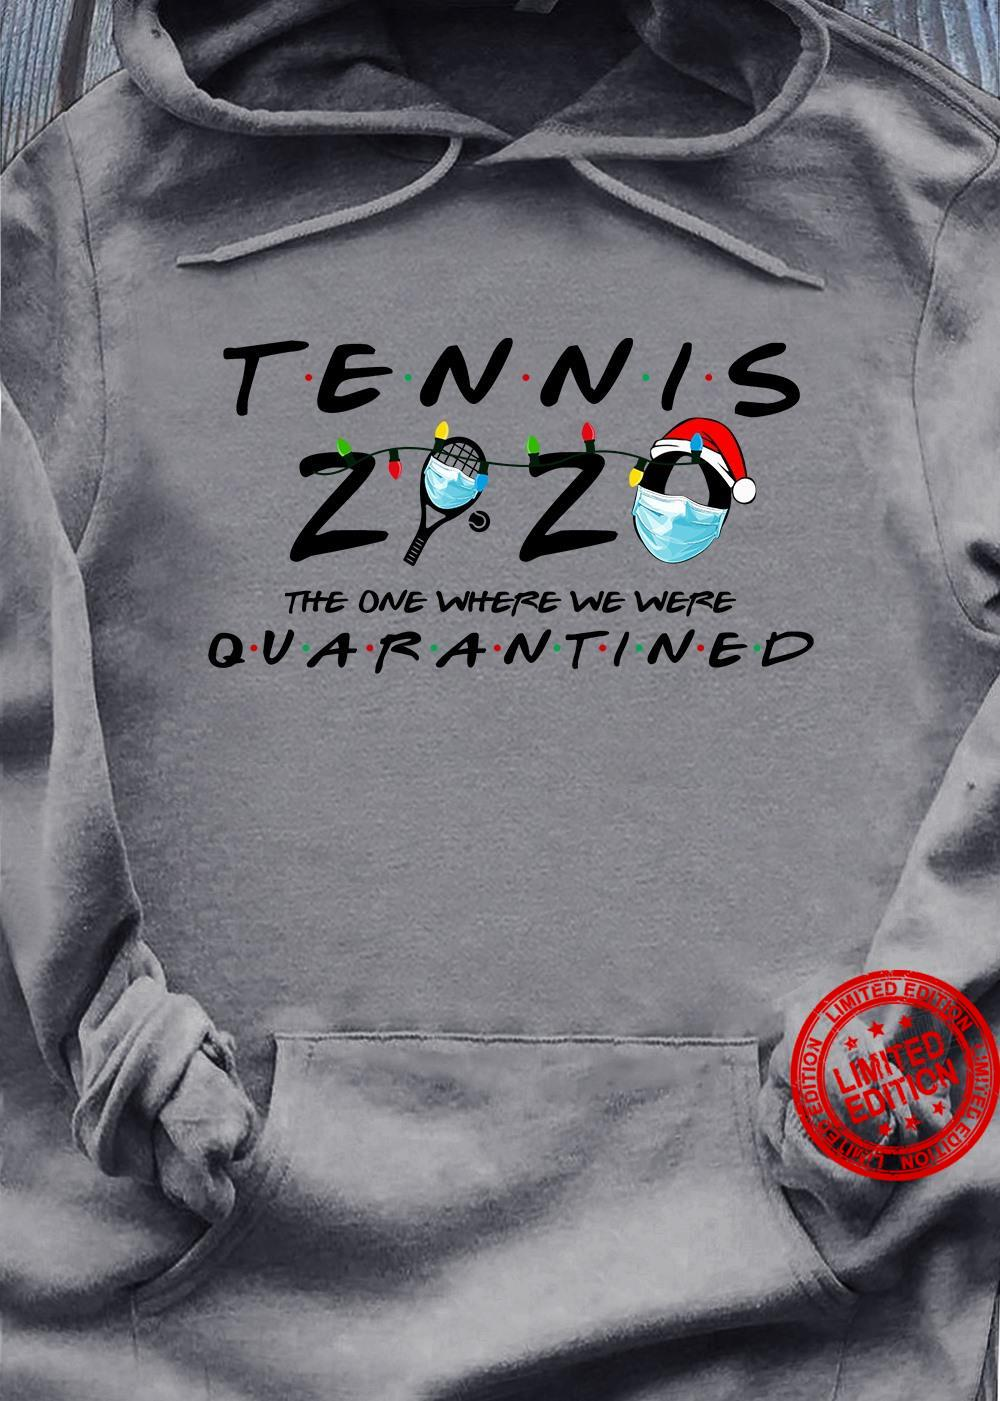 Tennis 2020 The One Where We Were Quarantined Shirt